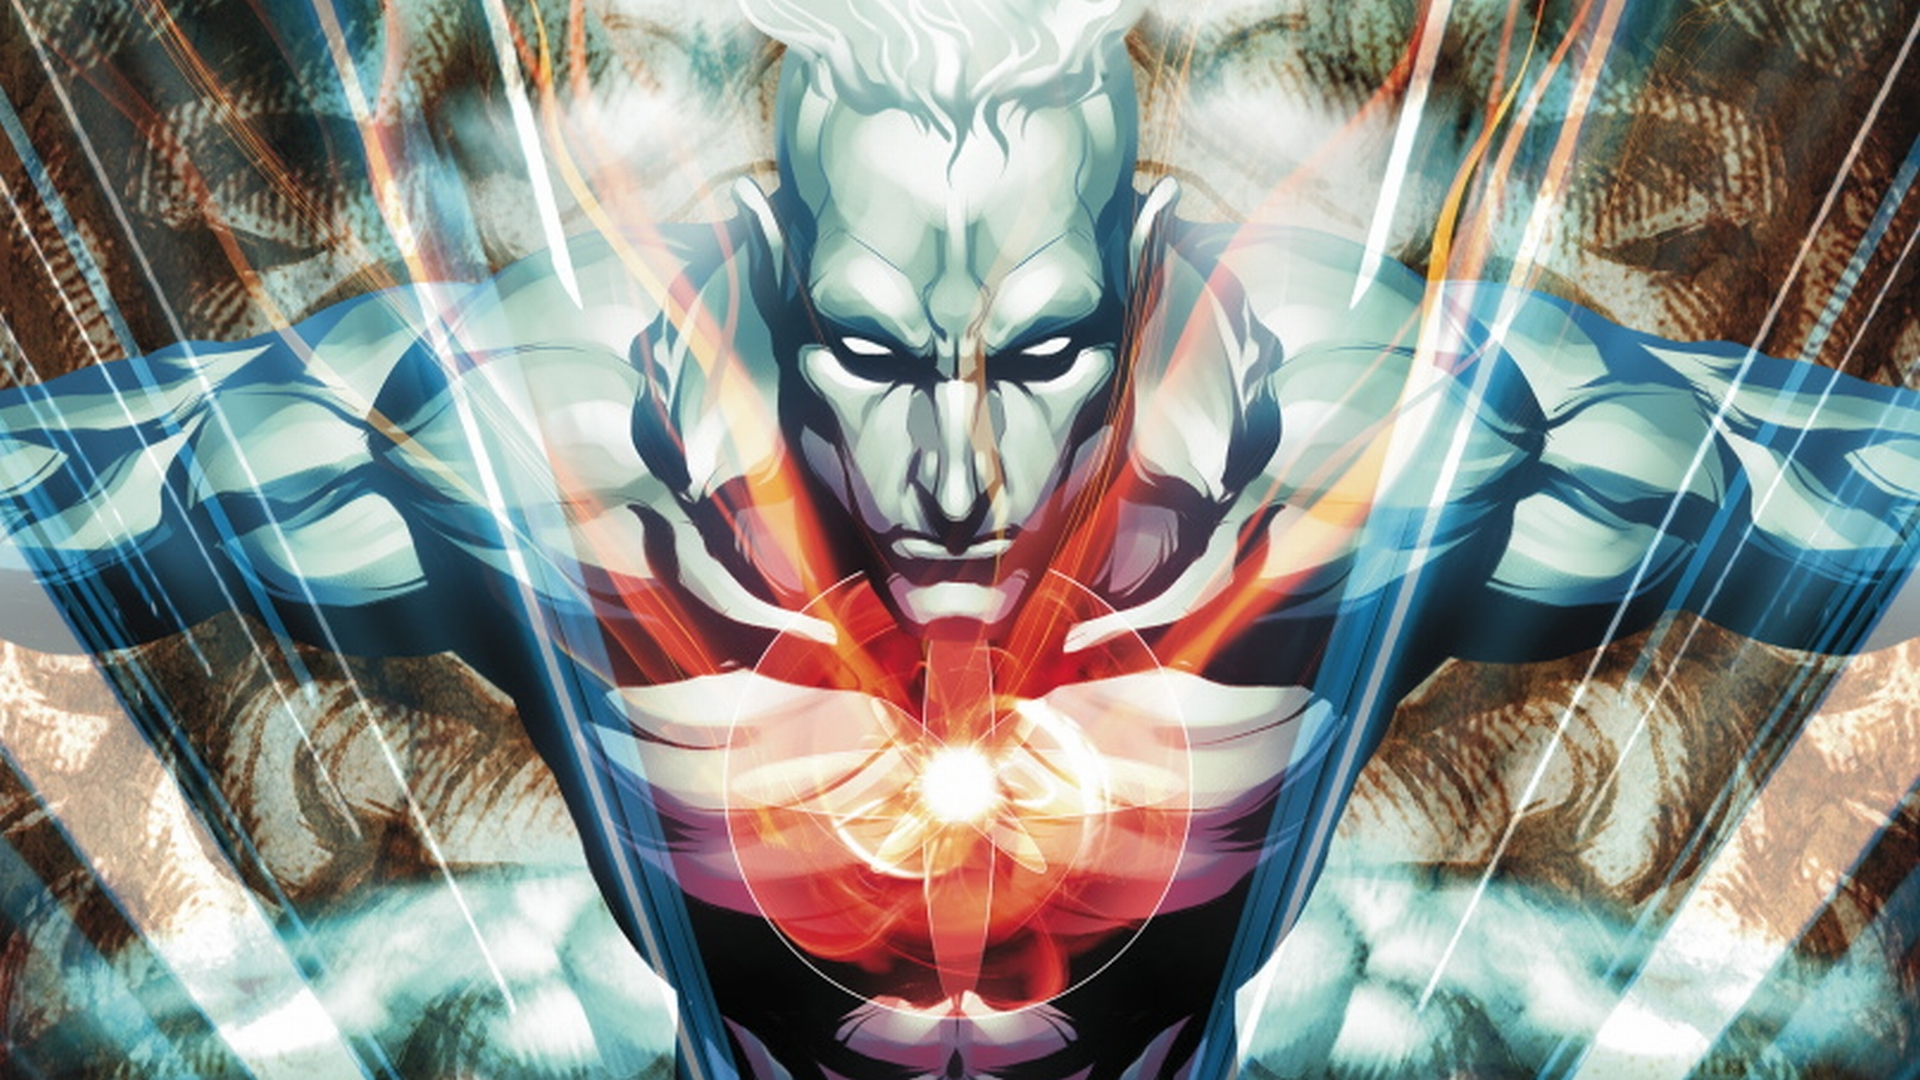 Top 20 Overpowered most powerful dc comics characters captain atom monarch 7